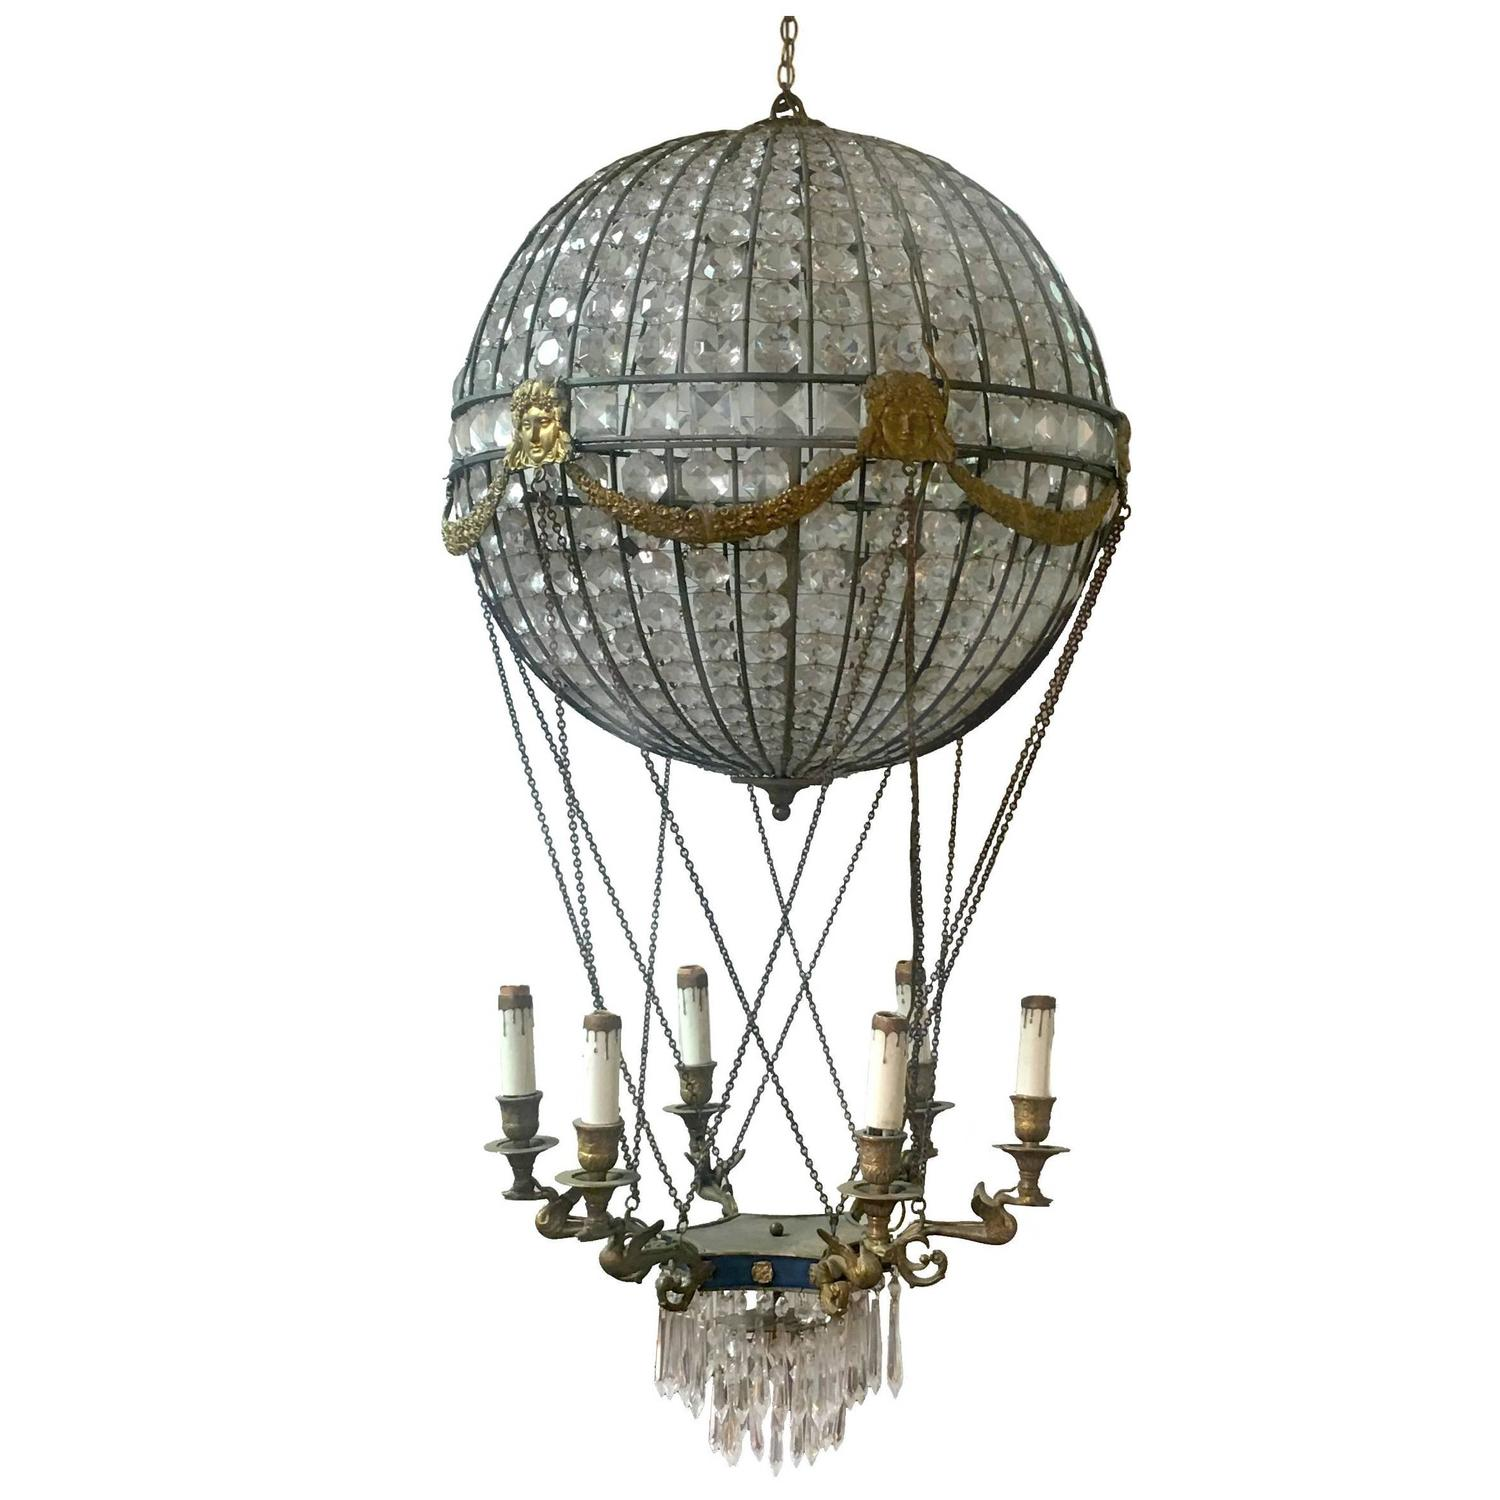 1930s Maison Bagués Beaded Crystal Hot Air Balloon Chandelier at